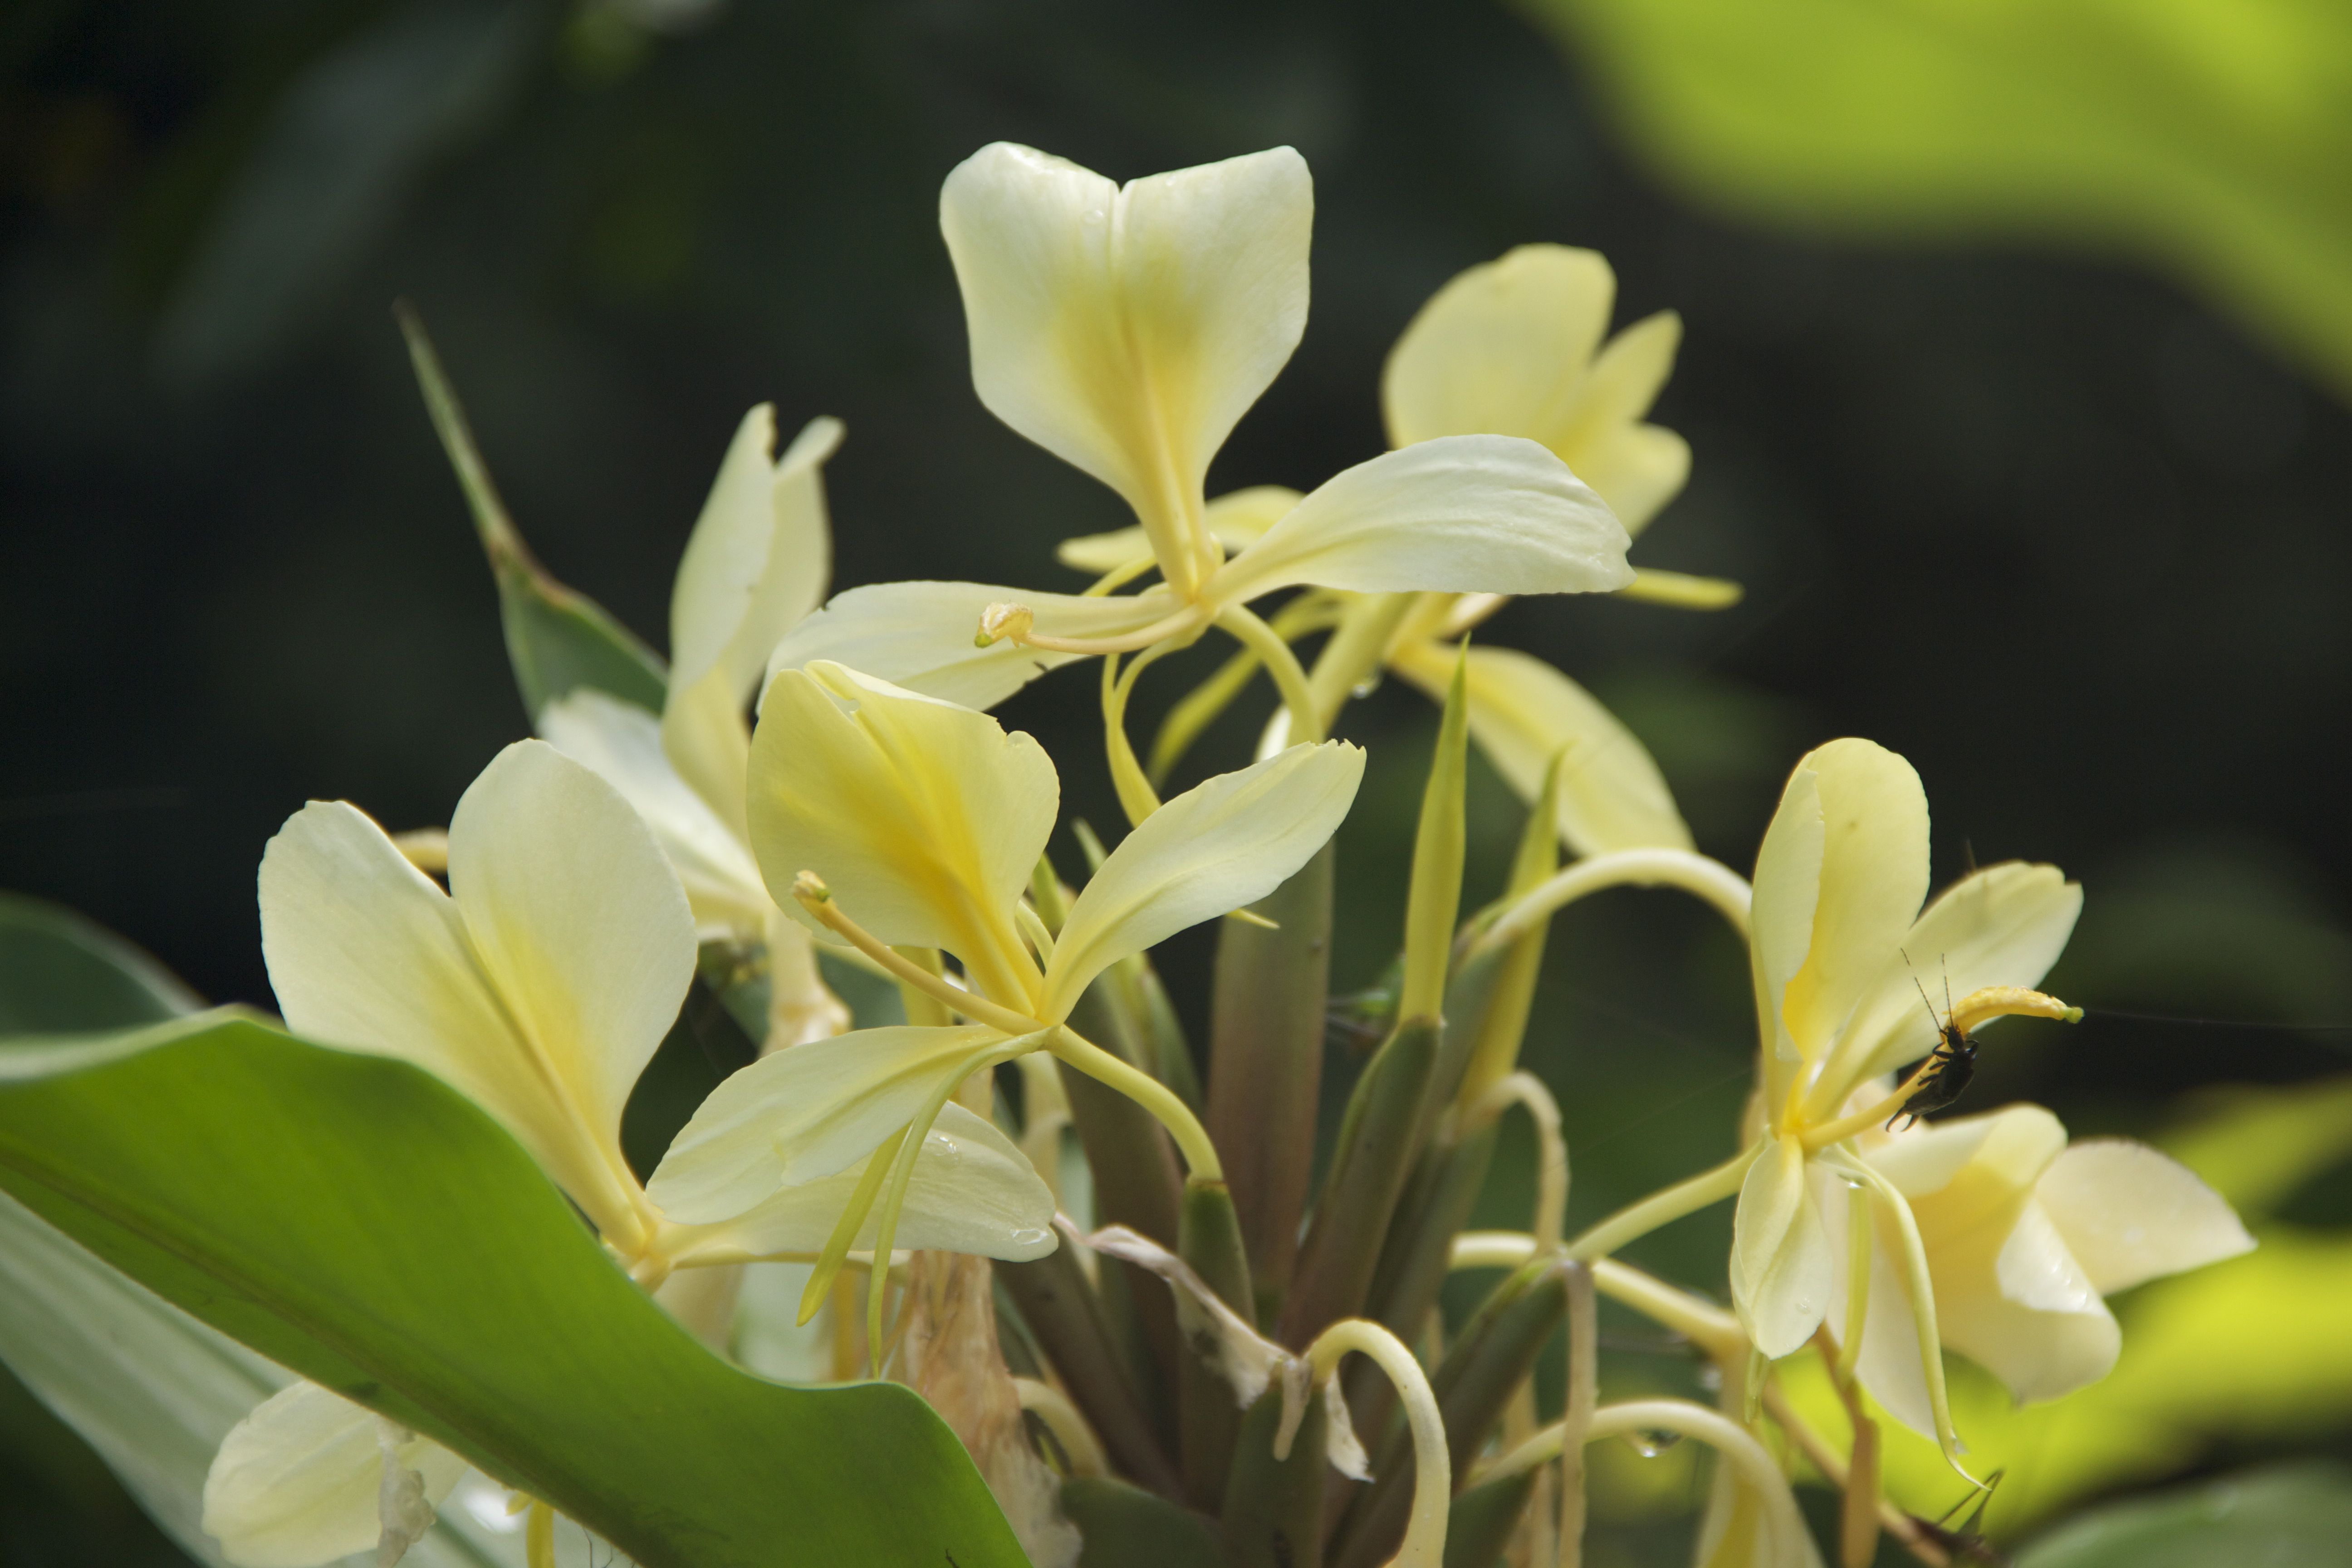 Ginger Lily We Have A Gorgeous White Ginger Lily And Vetiver Attar From India That Is Truly Botanical Perfume Natural Fragrances Essential Oils Aromatherapy